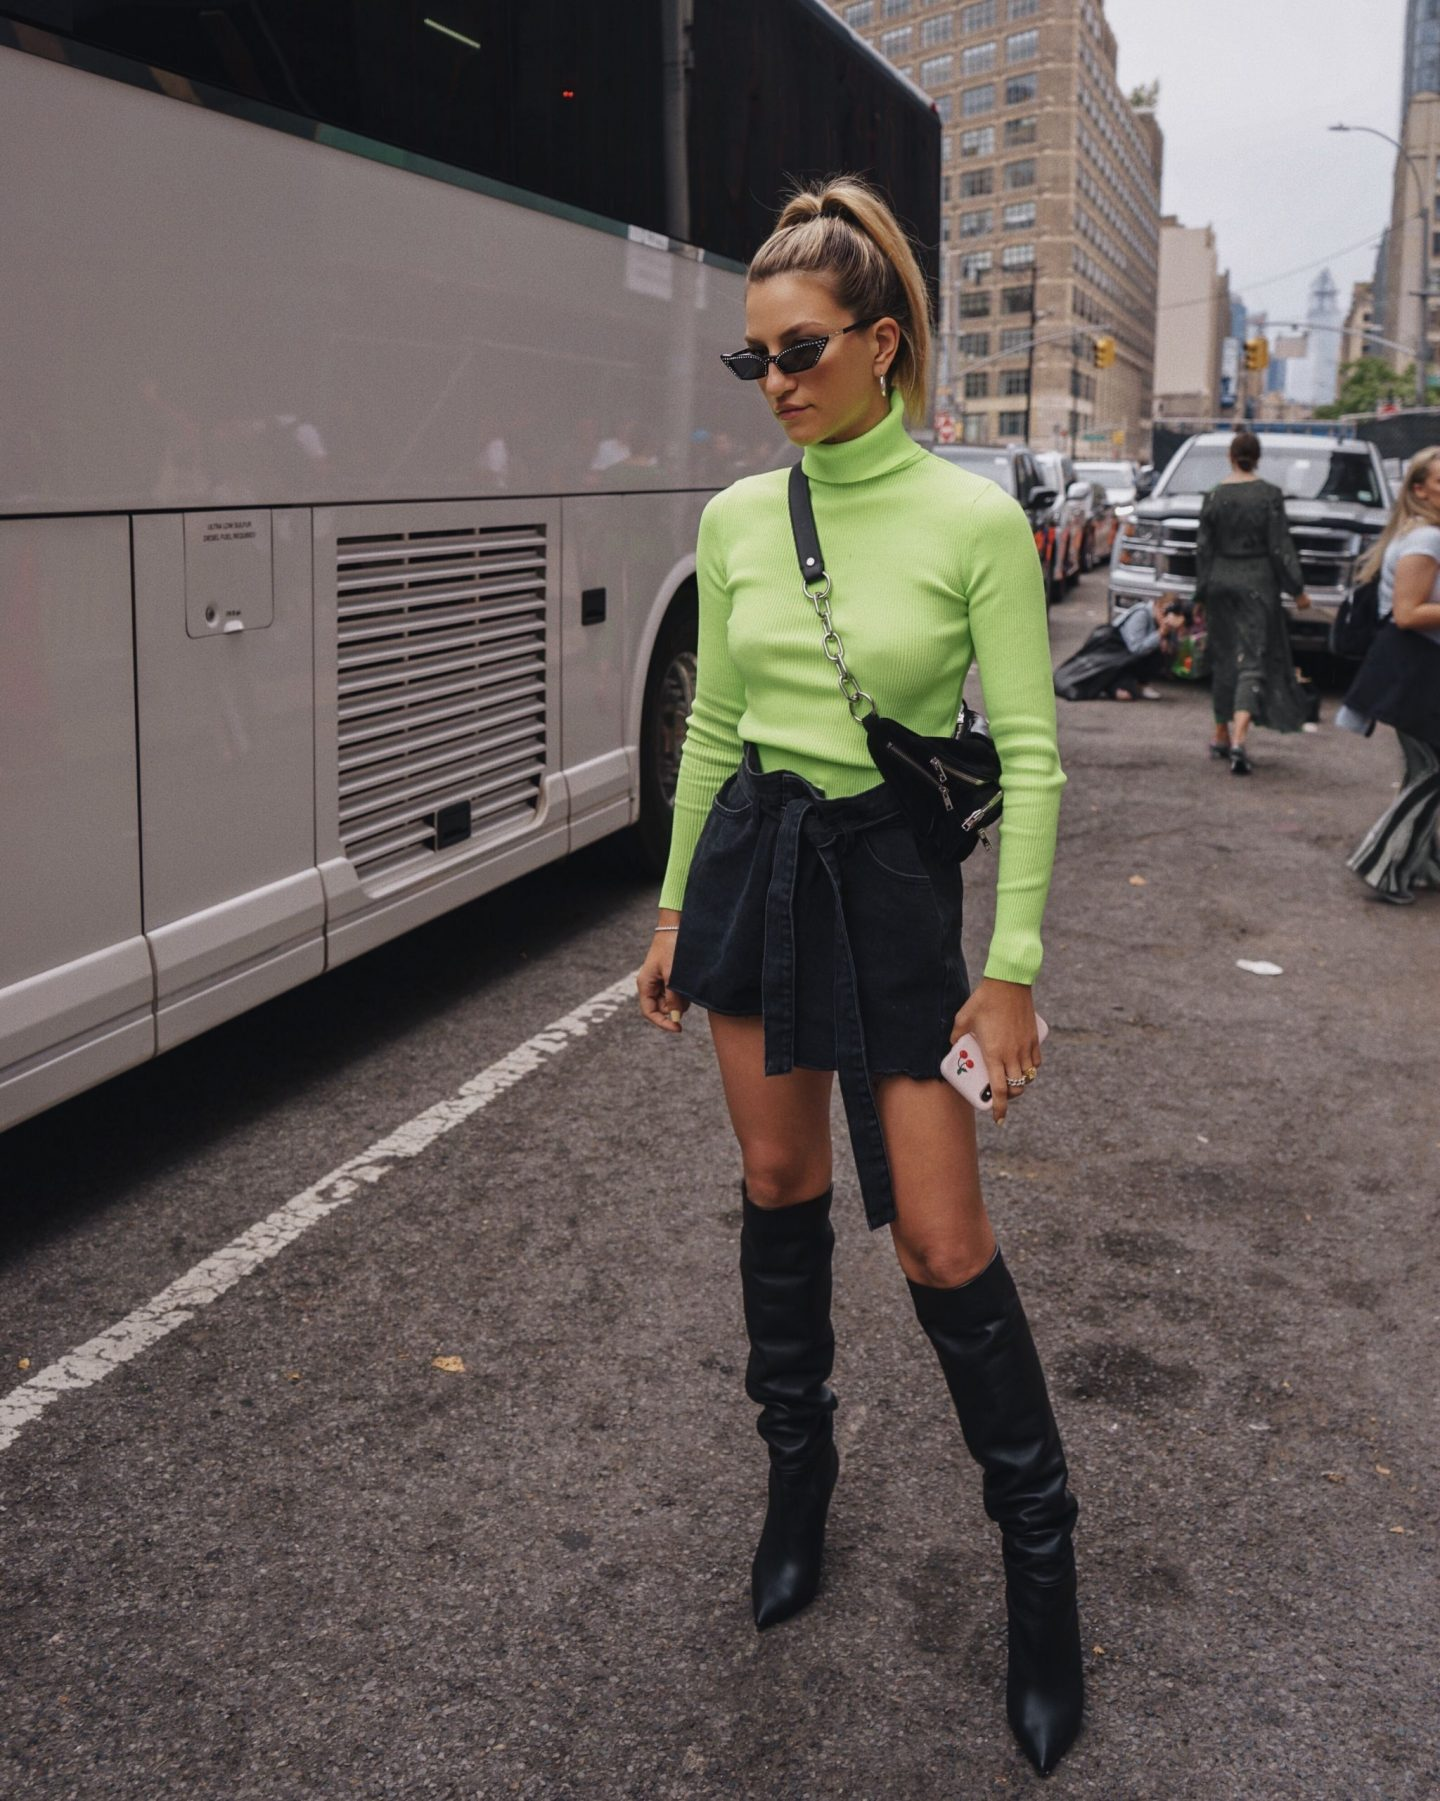 Cassandra DiMicco, Cass DiMicco, Dressed For Dreams, NYC, New York City, New York, Street Style NYC, Street Style 2018, NYC Street Style, NYC Outfit Inspo Street Style Outfits, 2018 Trends, Summer Style, Summer Outfit Inspo, NYC Fashion Blogger, NYC Fashion Blogger, NYC to do list, NYC to do, NYC bucket list, NYC Instagram Spots, neon turtle neck sweater, storets Edith belted denim skirt, tamara Mellon boots, Alexander wang fanny pack, poppy lissiman sunnies, nyfw, nyfw outfit, nyfw street style